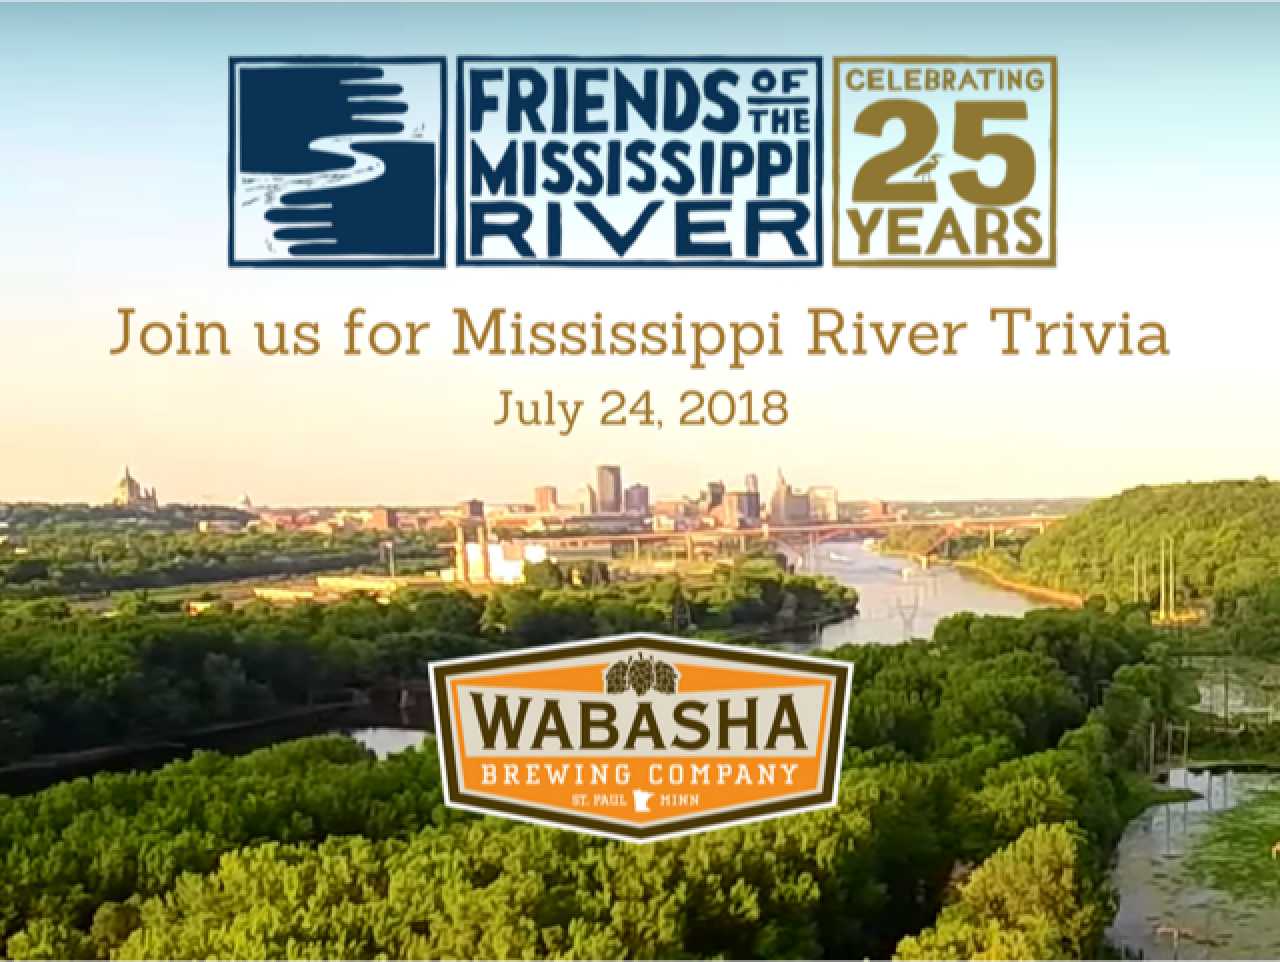 Join us for Mississippi River Trivia at Wabasha Brewing Company Taproom